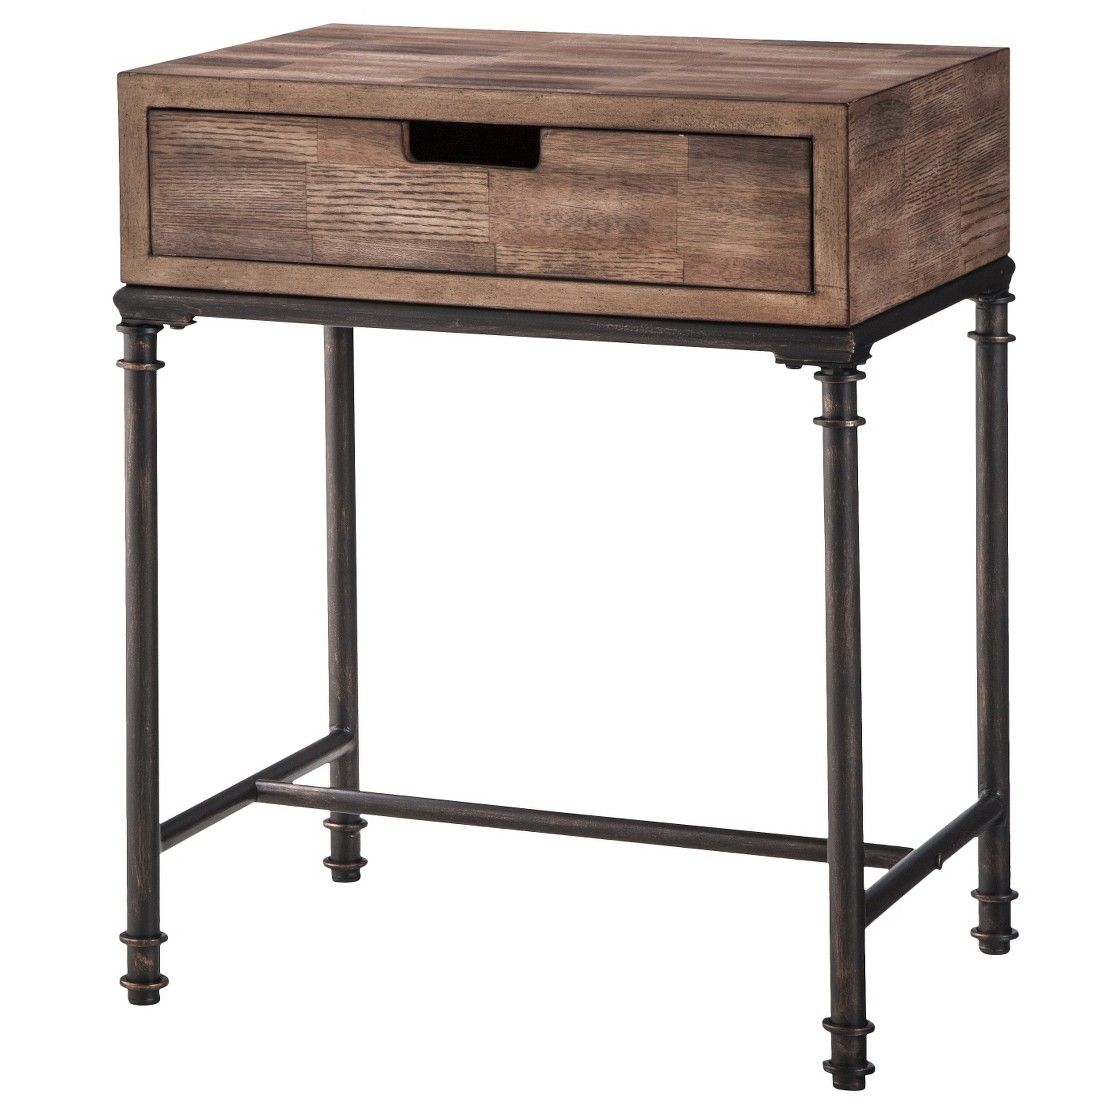 threshold mixed material side table patchwork home makeover riva end painted black diy crate frame chinese sofa leick furniture favorite finds unfinished entertainment circular